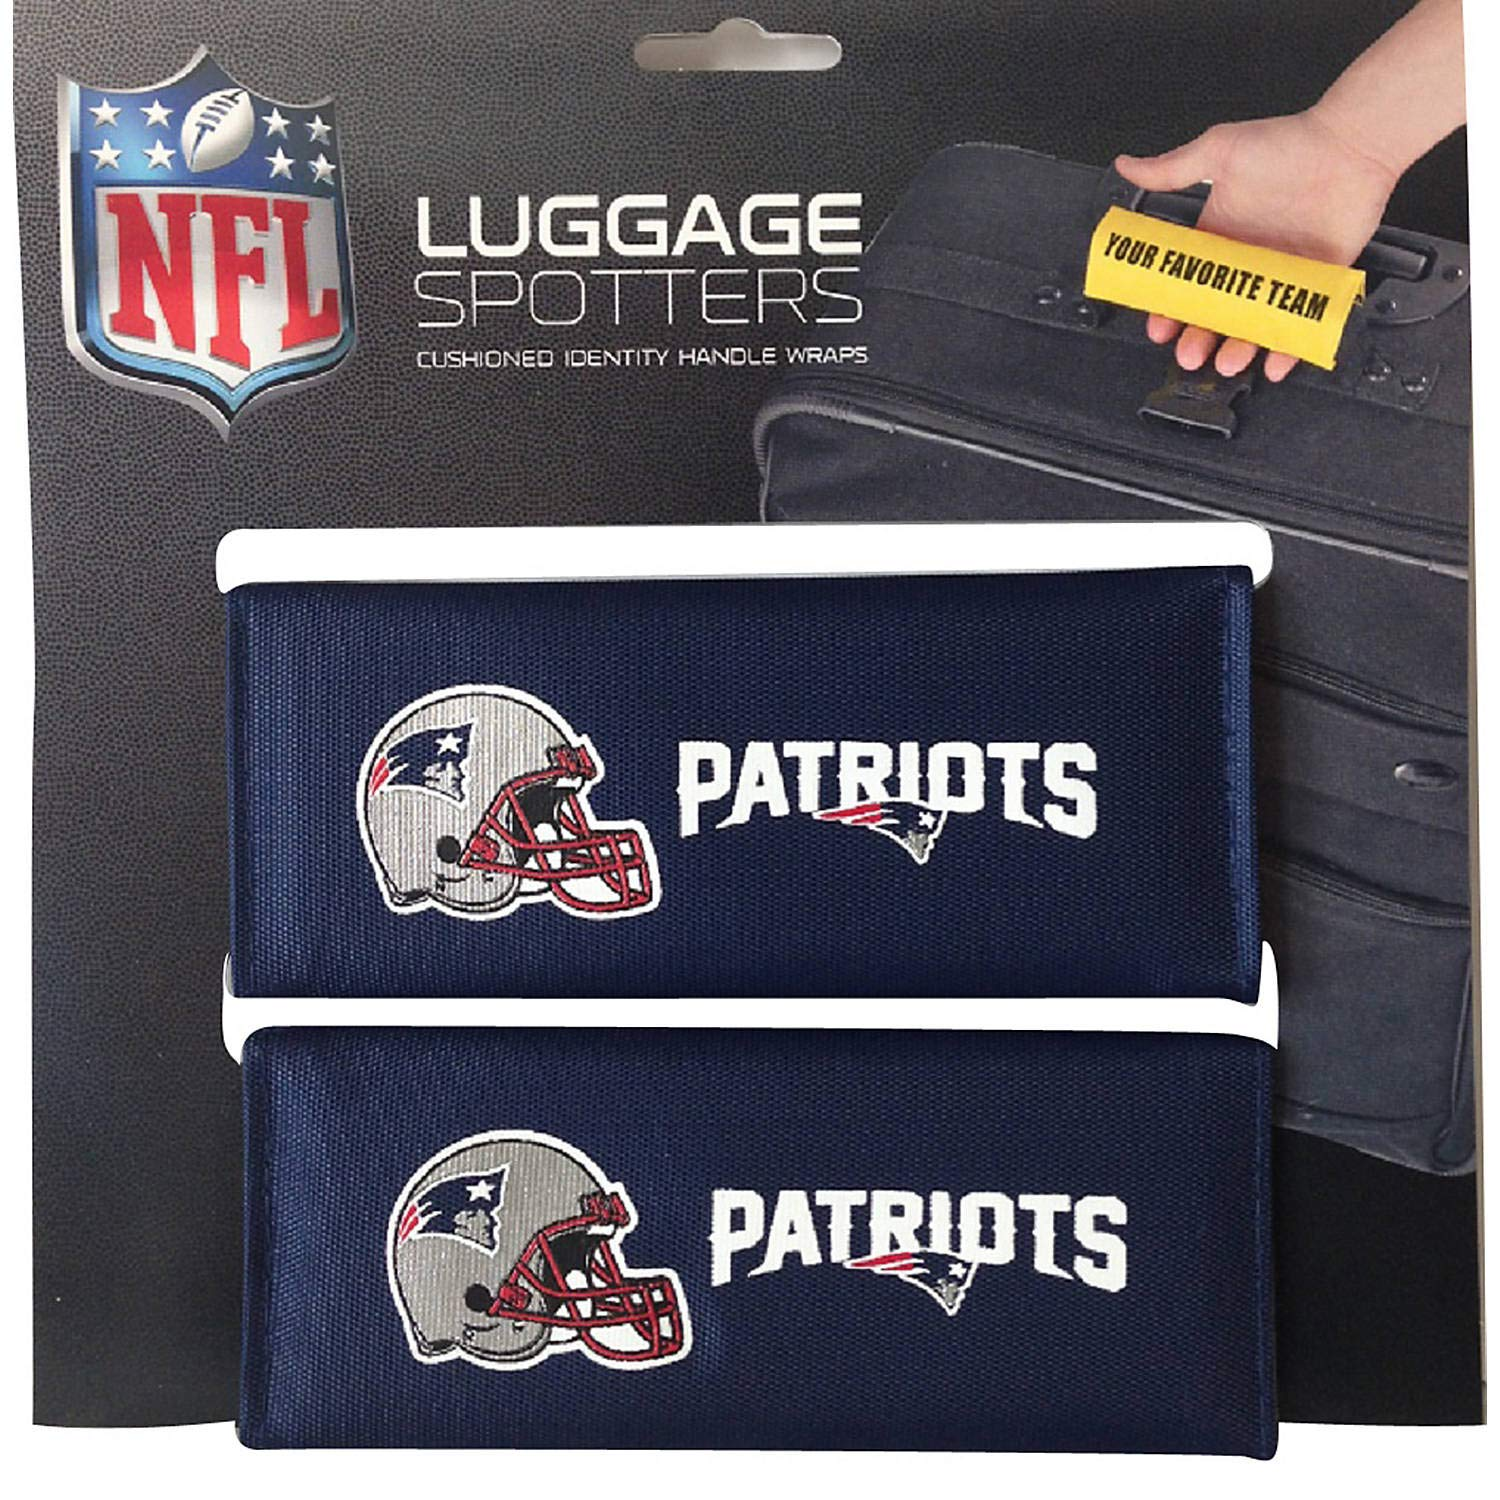 50% OFF! PATRIOTS Luggage Spotter Suitcase Handle Wrap Bag Tag Locator with I.D. Pocket (2-PACK) - CLOSEOUT! THIS IS THE LAST OF THEM! China NEPATSBLUE